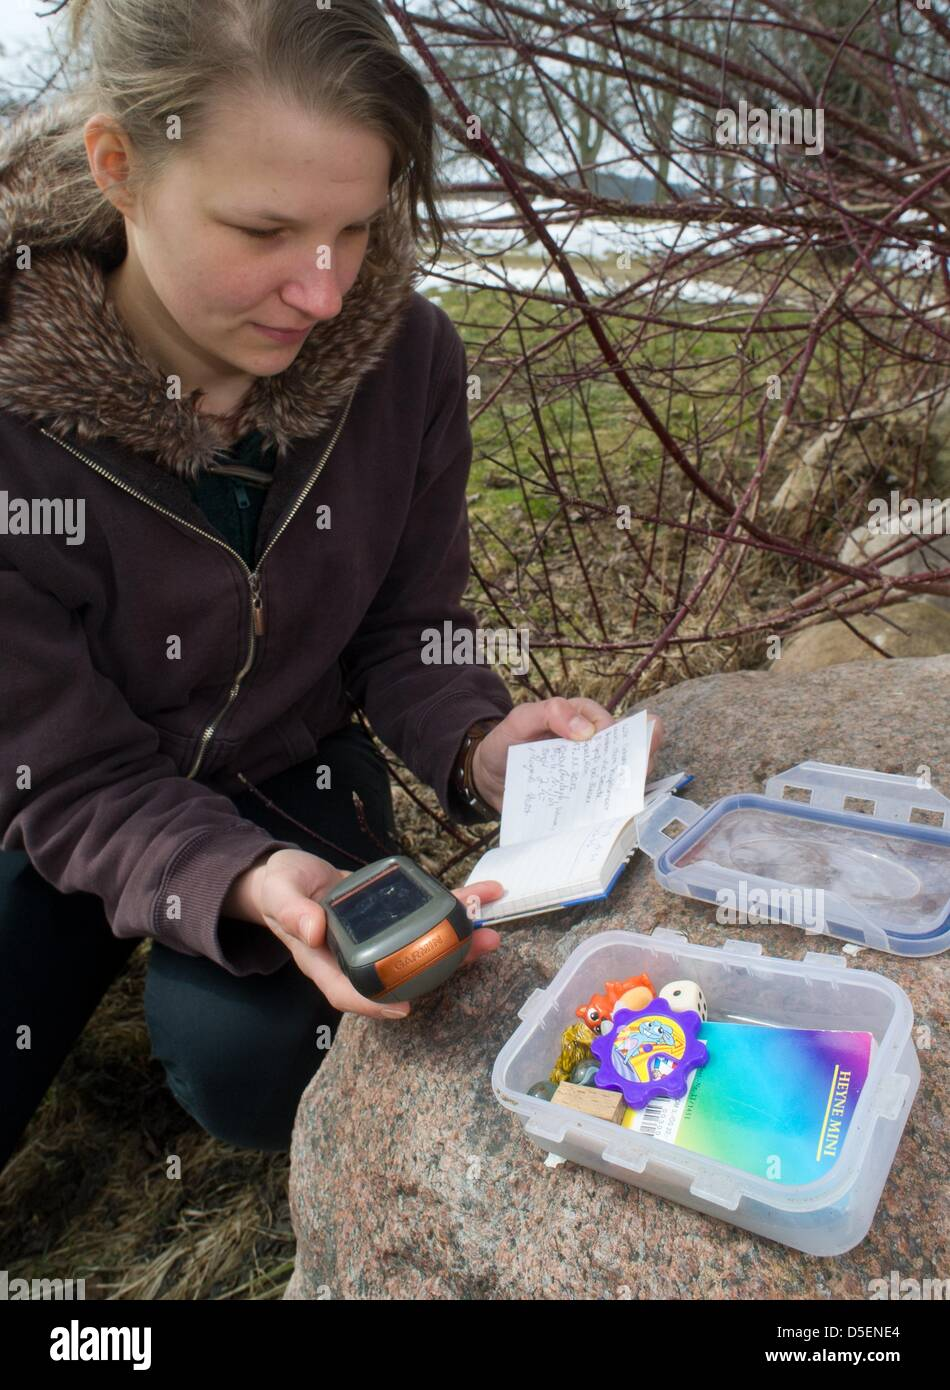 Thekla Noack, who is doing a voluntary ecological year (FOEJ) with the August Bier Foundation, checks a geocache - Stock Image